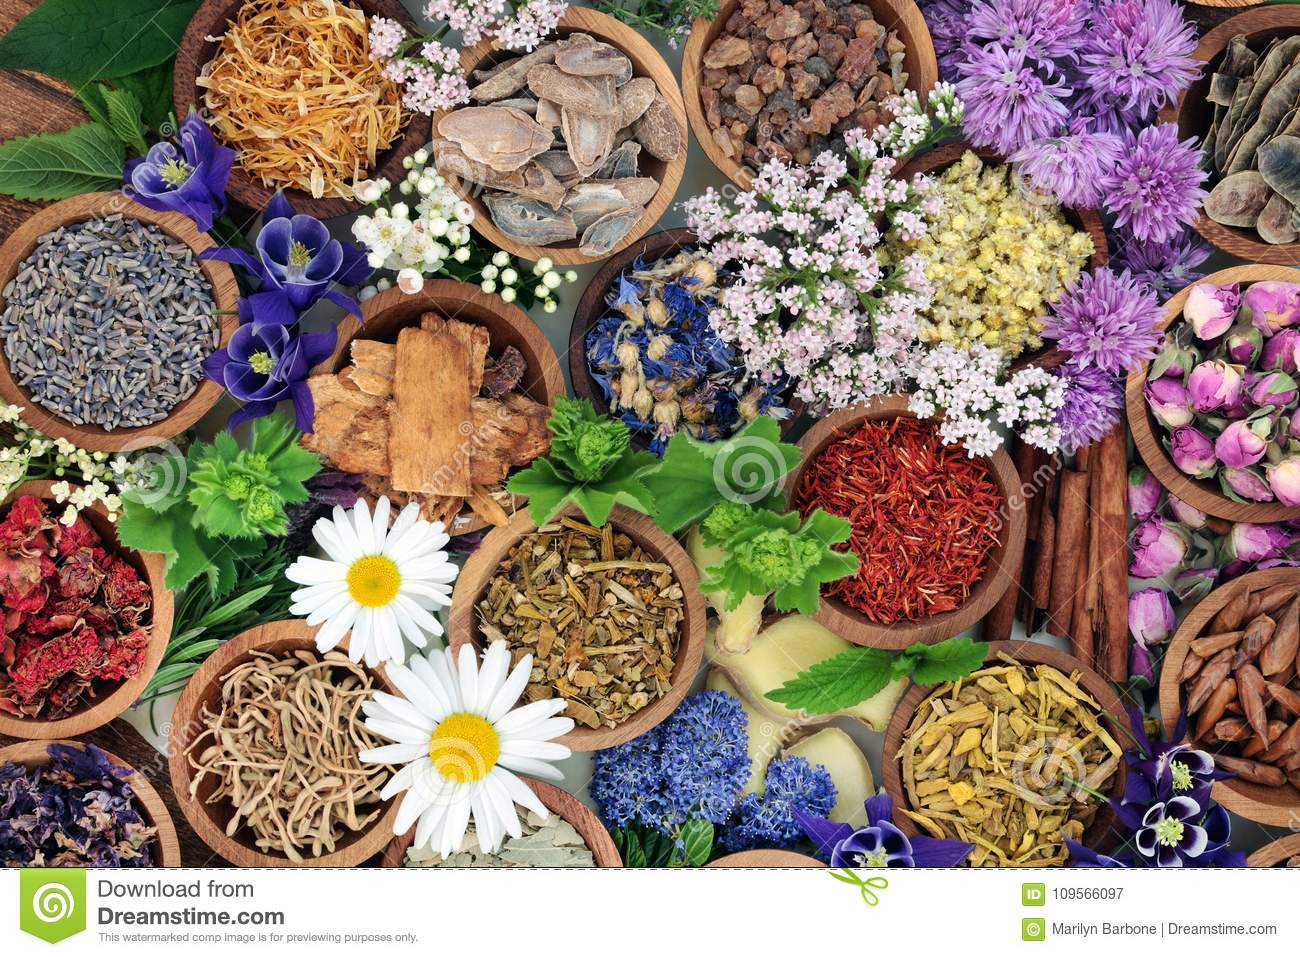 herbal medicine herbs flowers herbal medicine herbs flowers used chinese natural alternative remedies 109566097 - How to Avoid Acquiring Liver Diseases